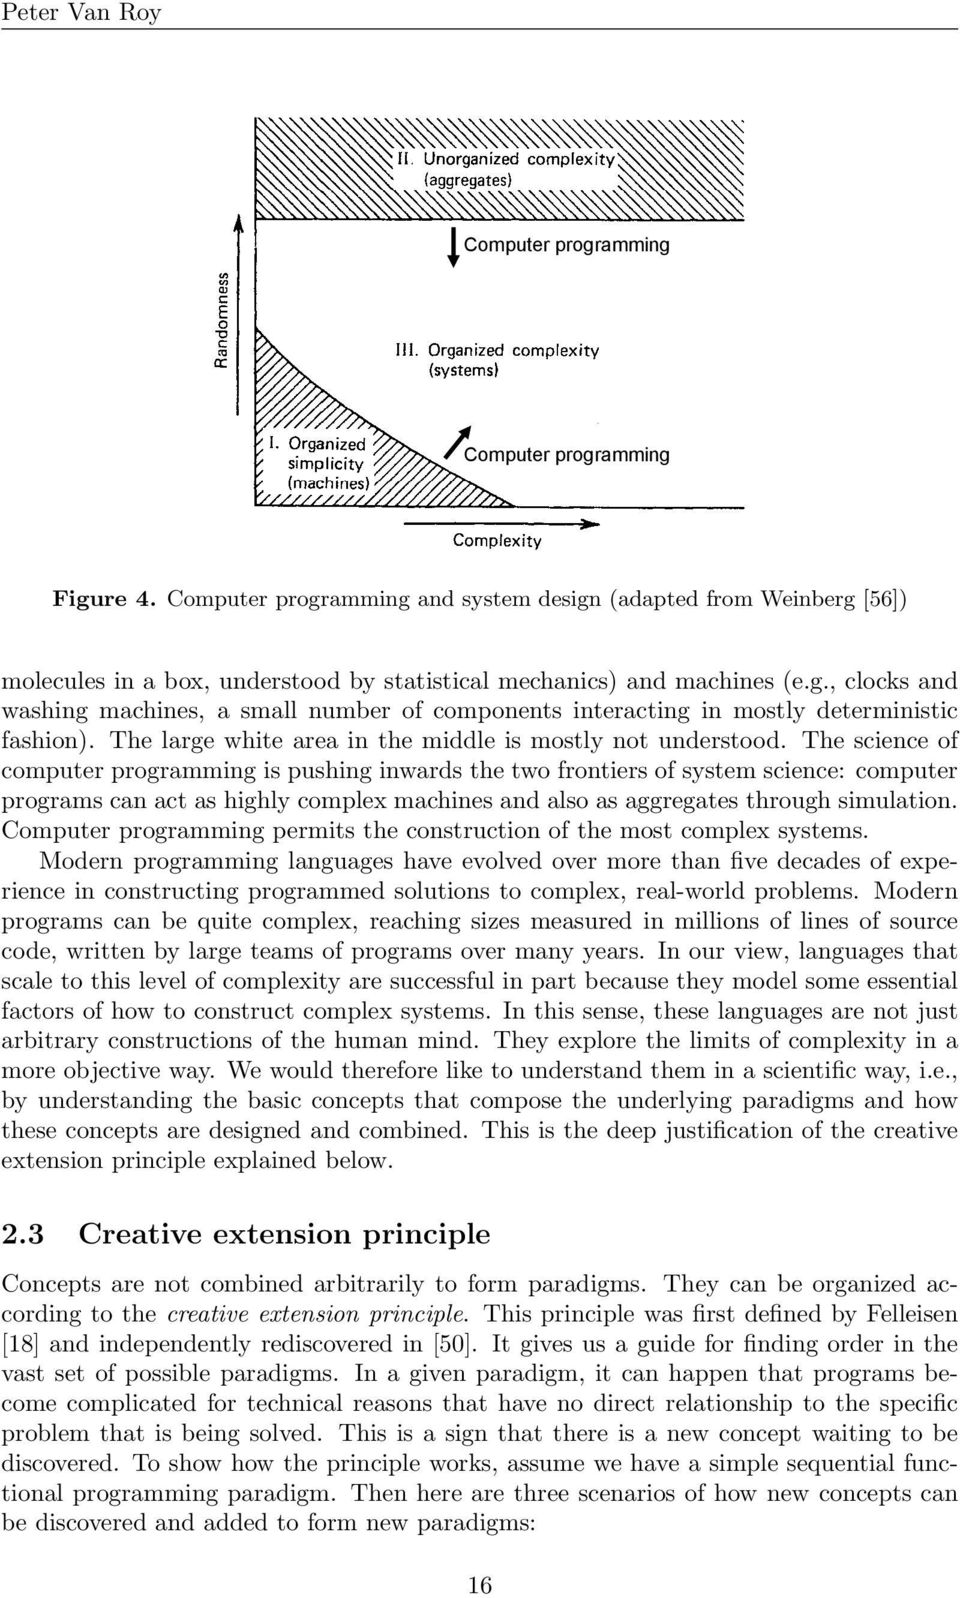 The science of computer is pushing inwards the two frontiers of system science: computer programs can act as highly complex machines and also as aggregates through simulation.